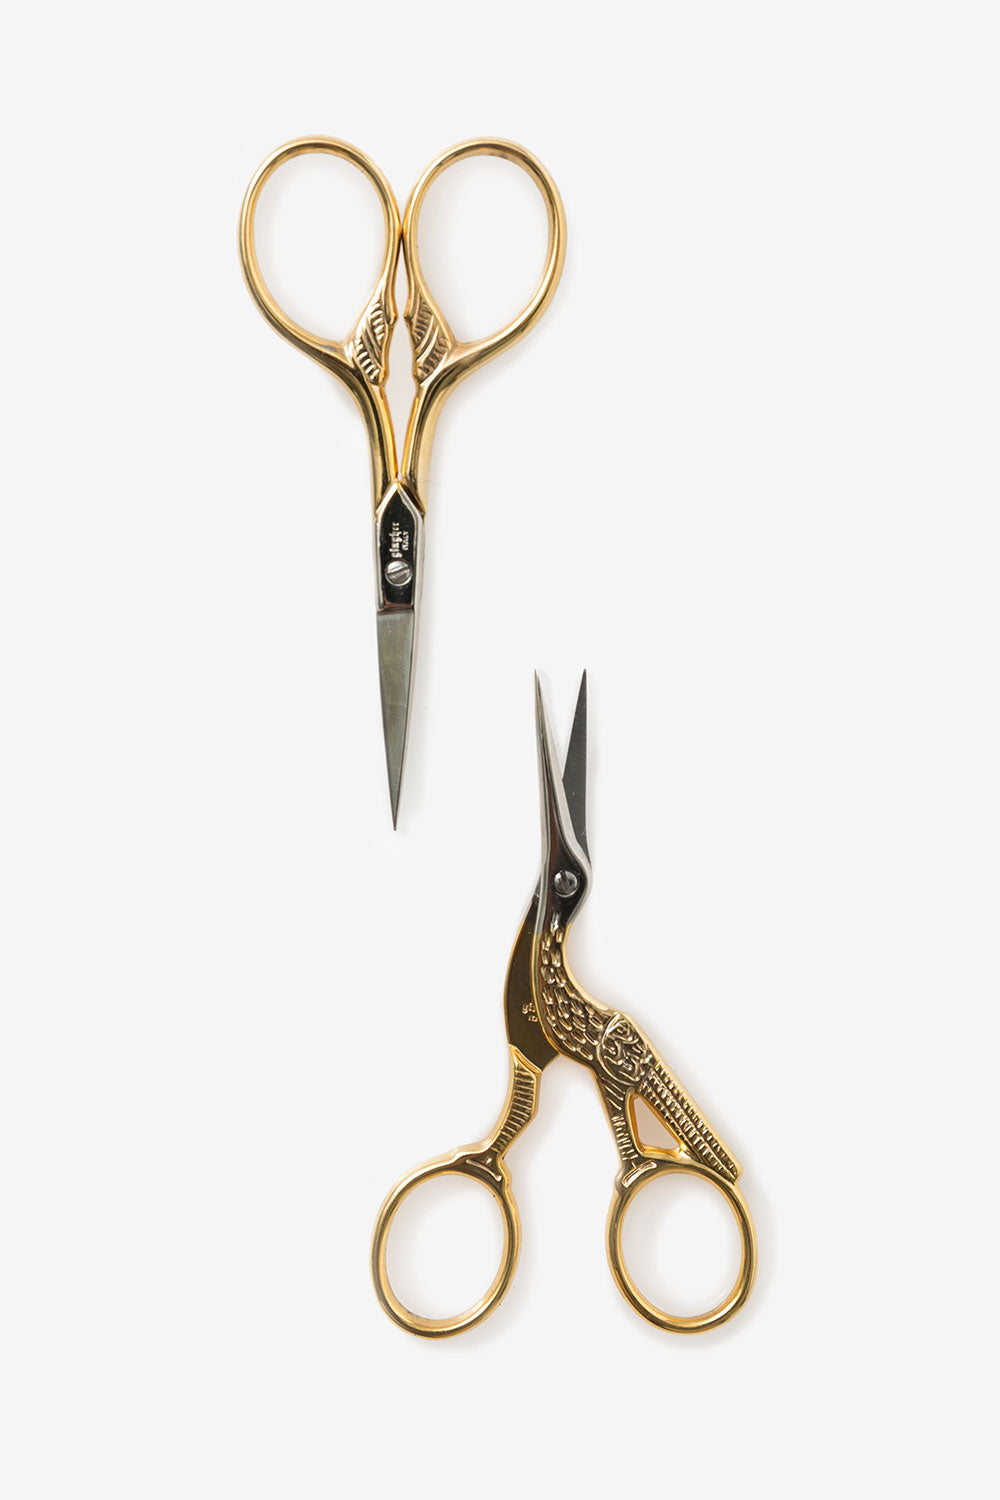 The School of Making Gold-Handled Embroidery Scissors Gingher